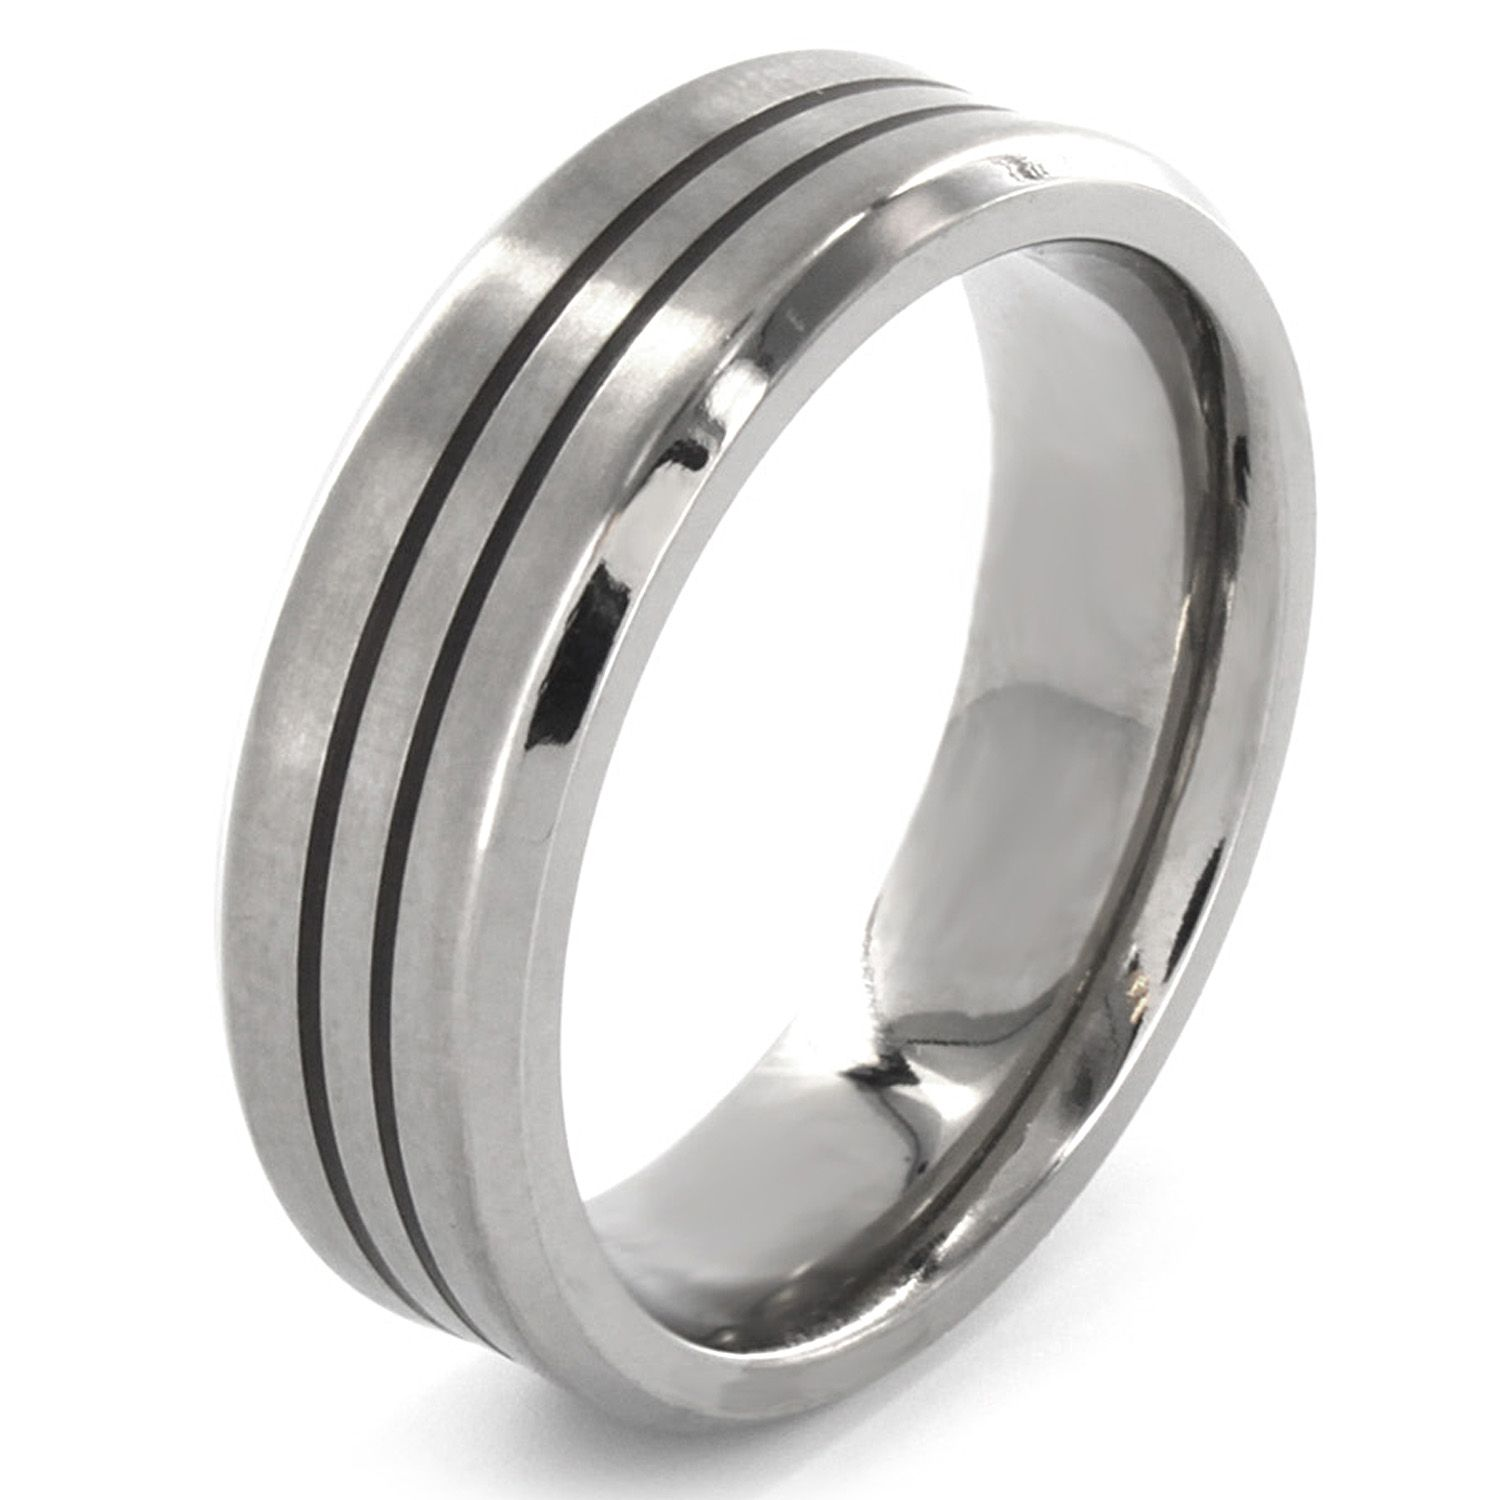 walmart wedding rings sets for him and her discount wedding rings Walmart wedding rings sets for him and her Wedding Bands For Him And Her Walmart